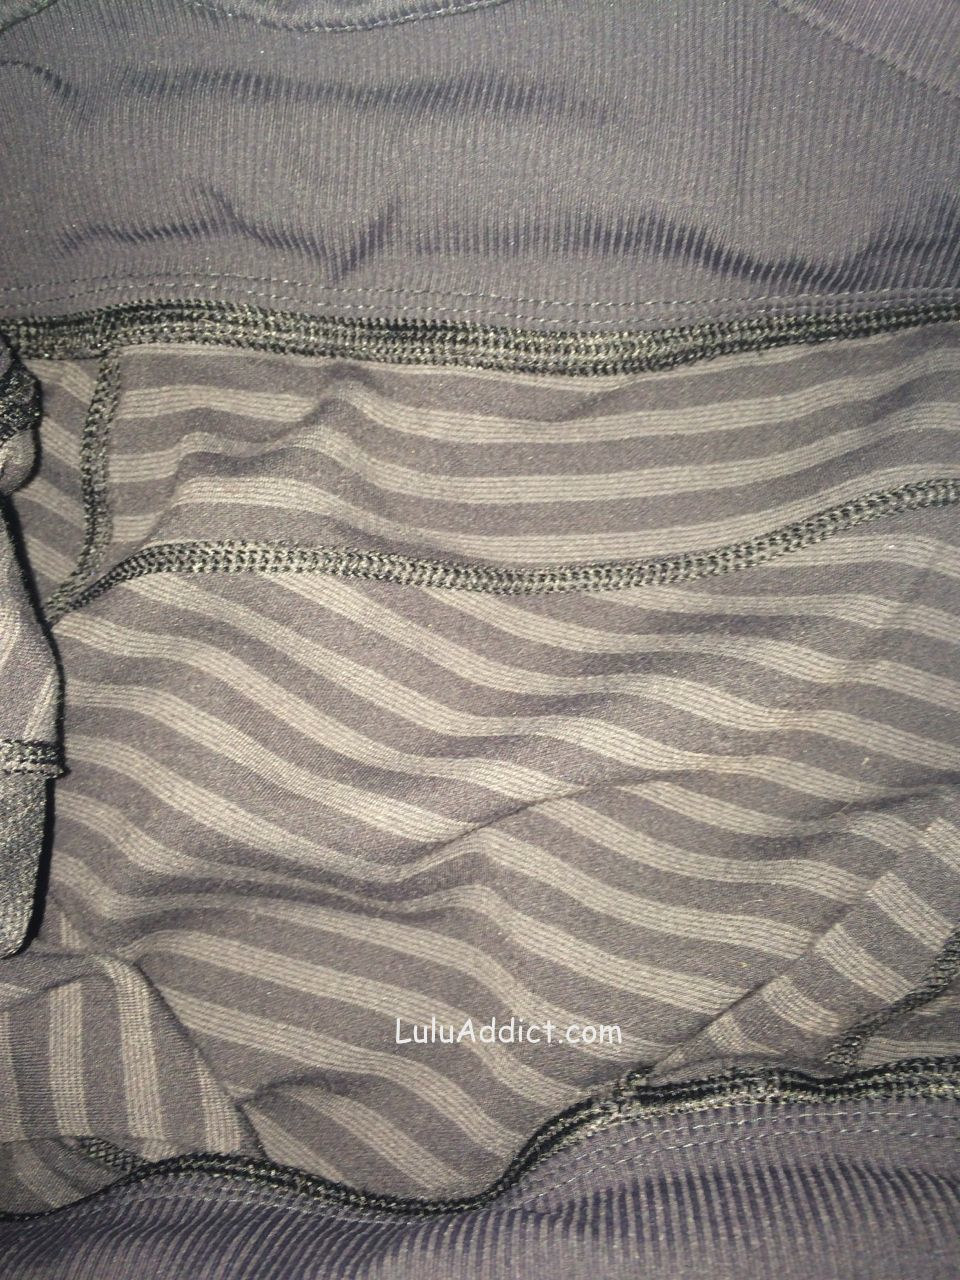 lululemon base runner pant material